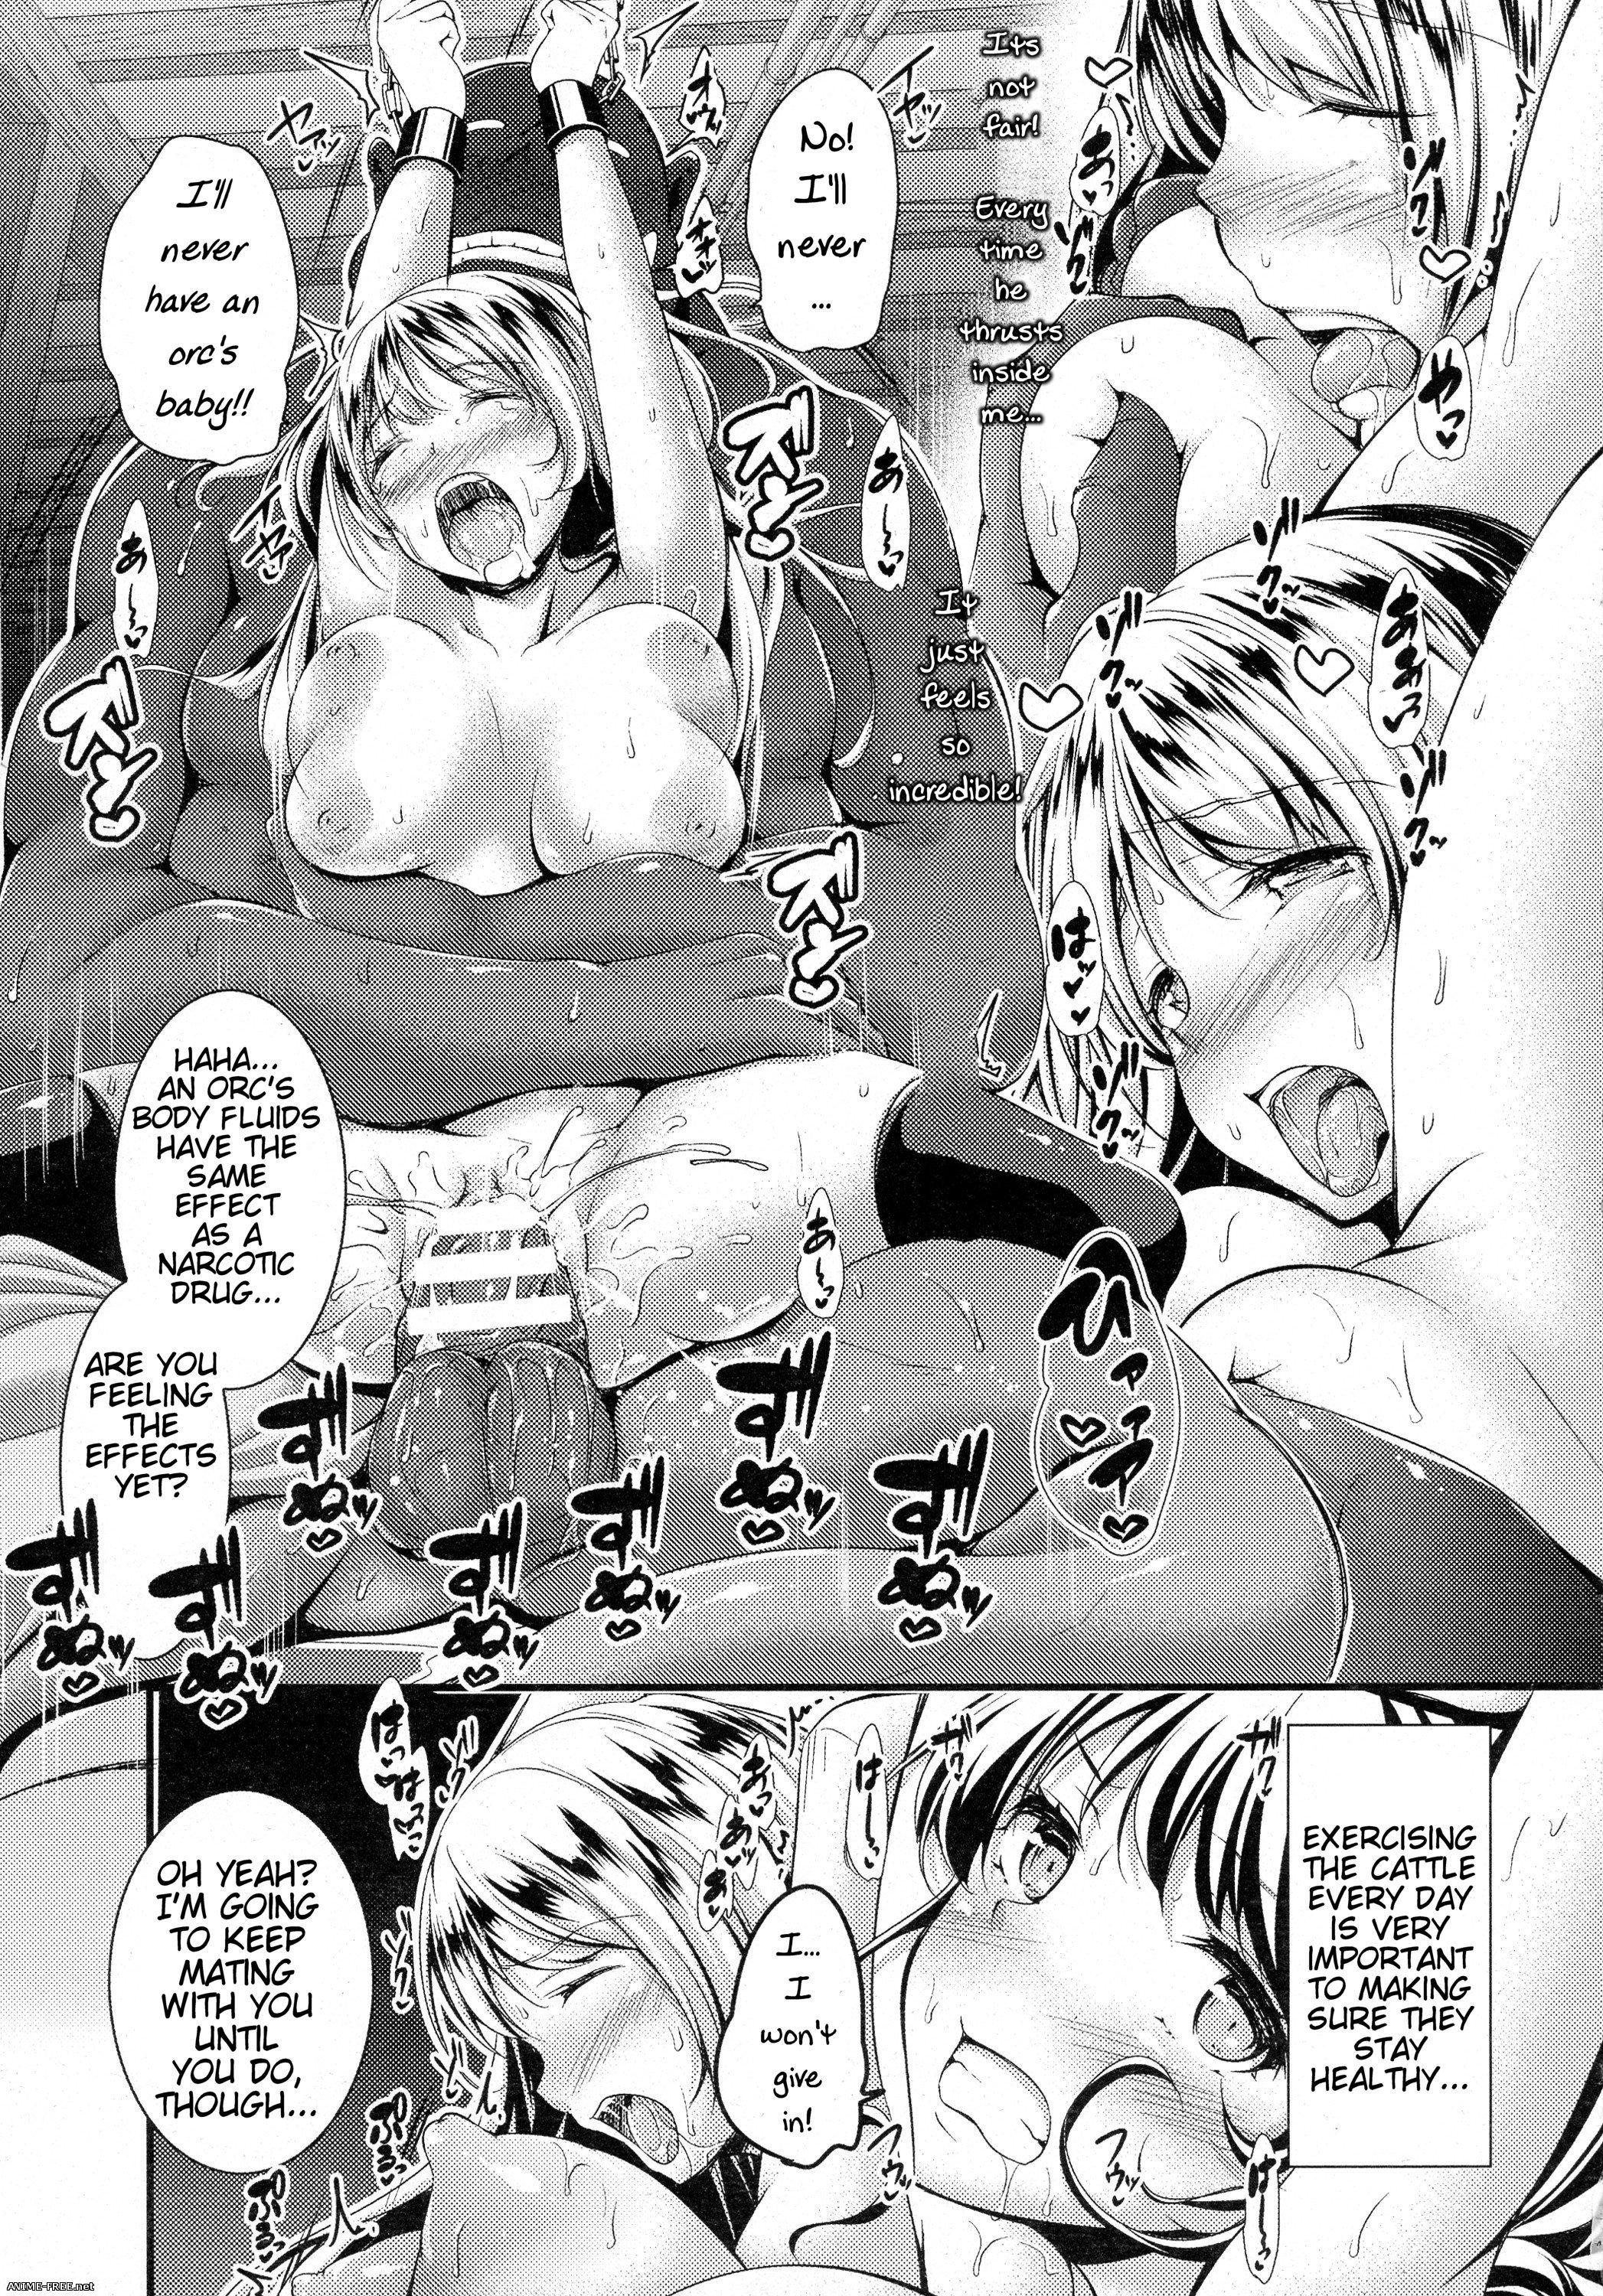 Tokei Usagi(Pan to Butterfly) - манга хентай [Cen] [ENG,JAP] Manga Hentai